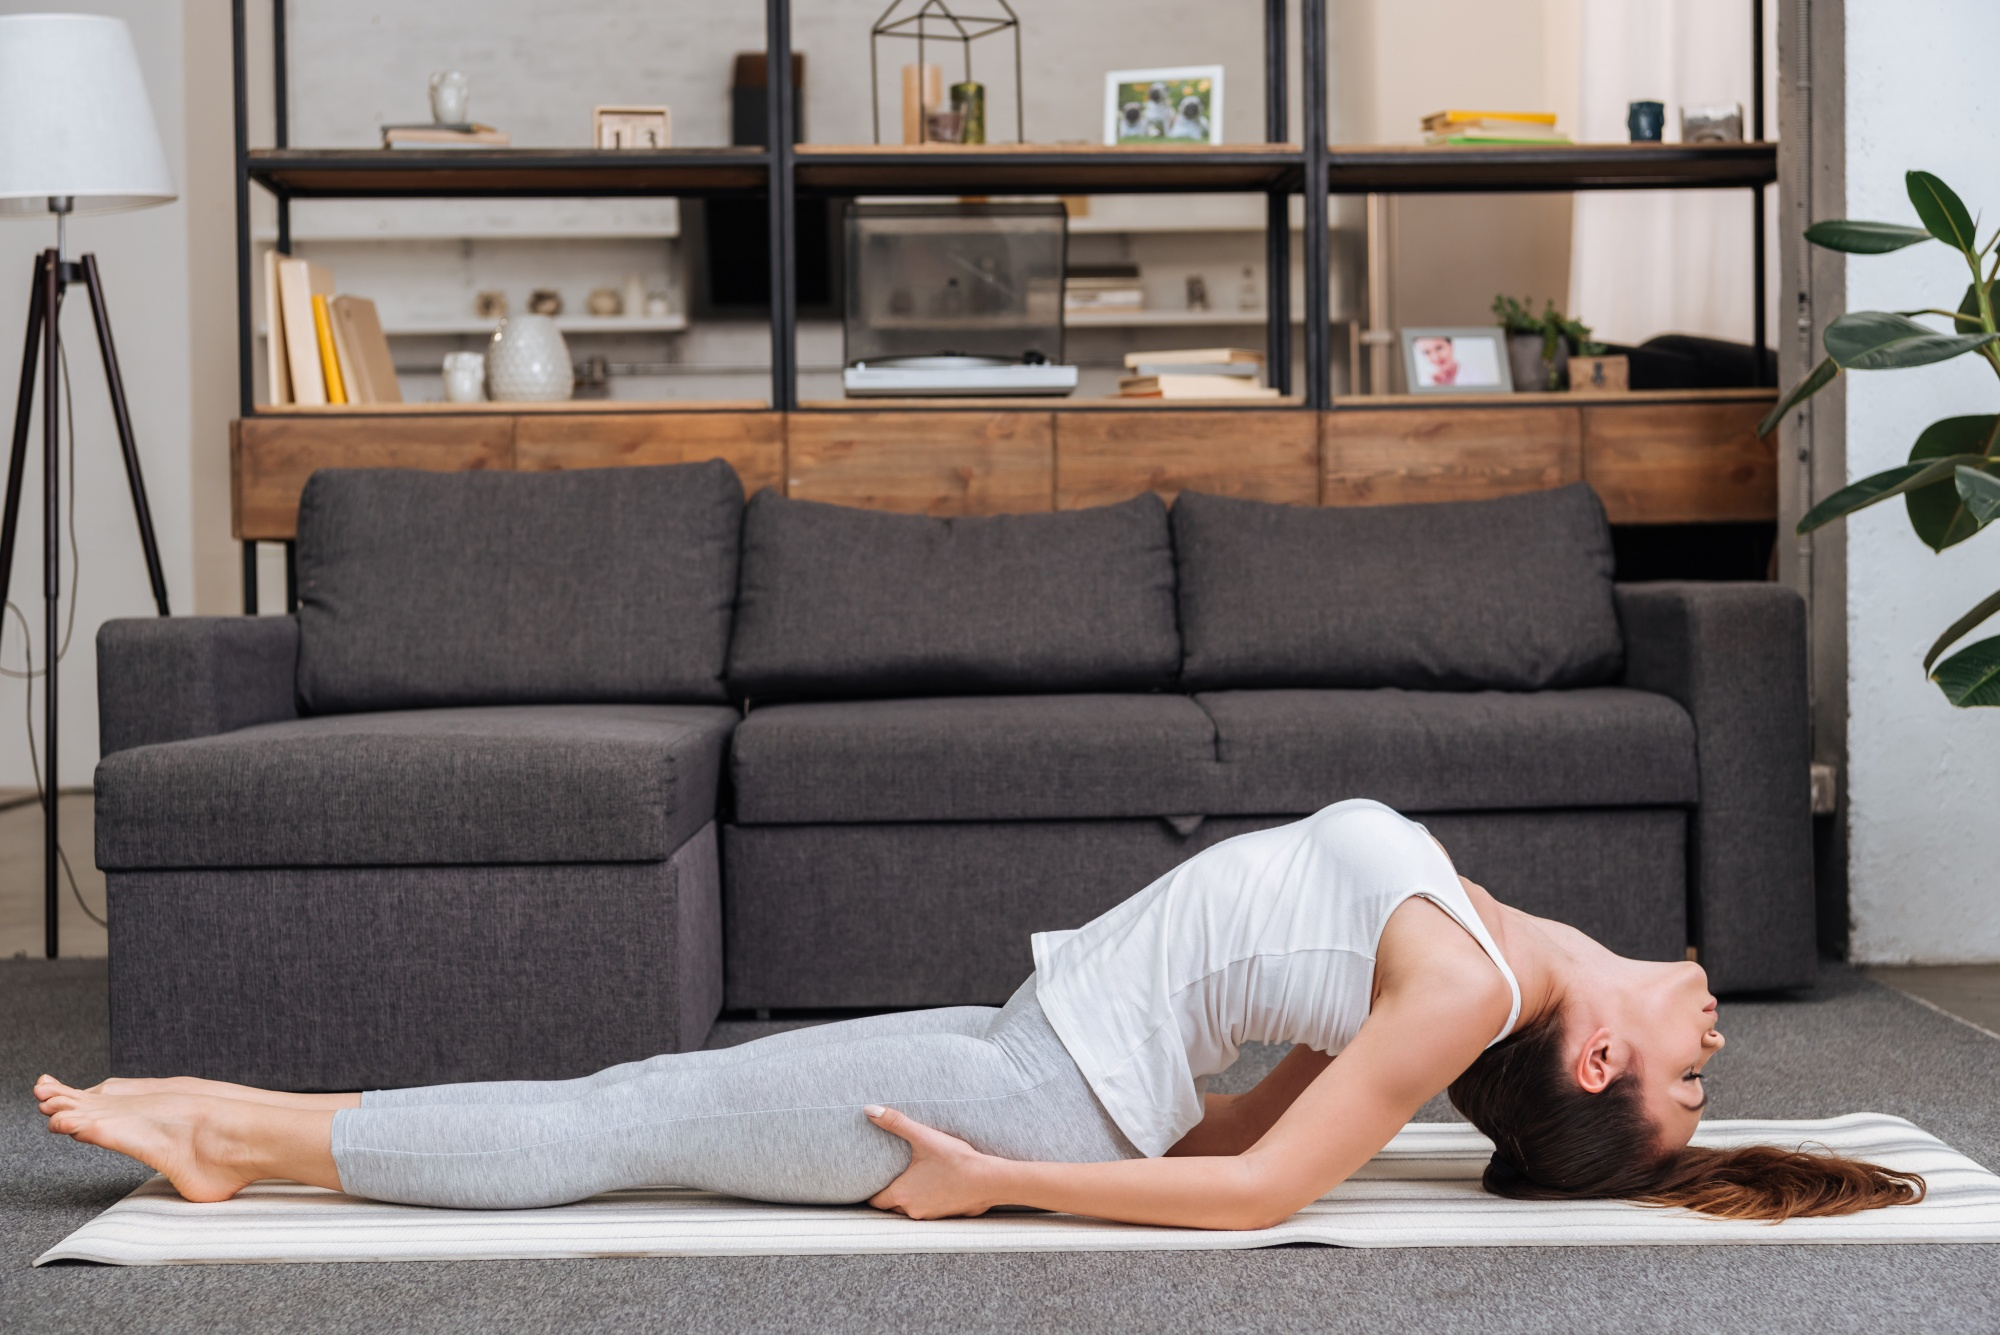 better sex after menopause, woman practicing fish pose at home in living room